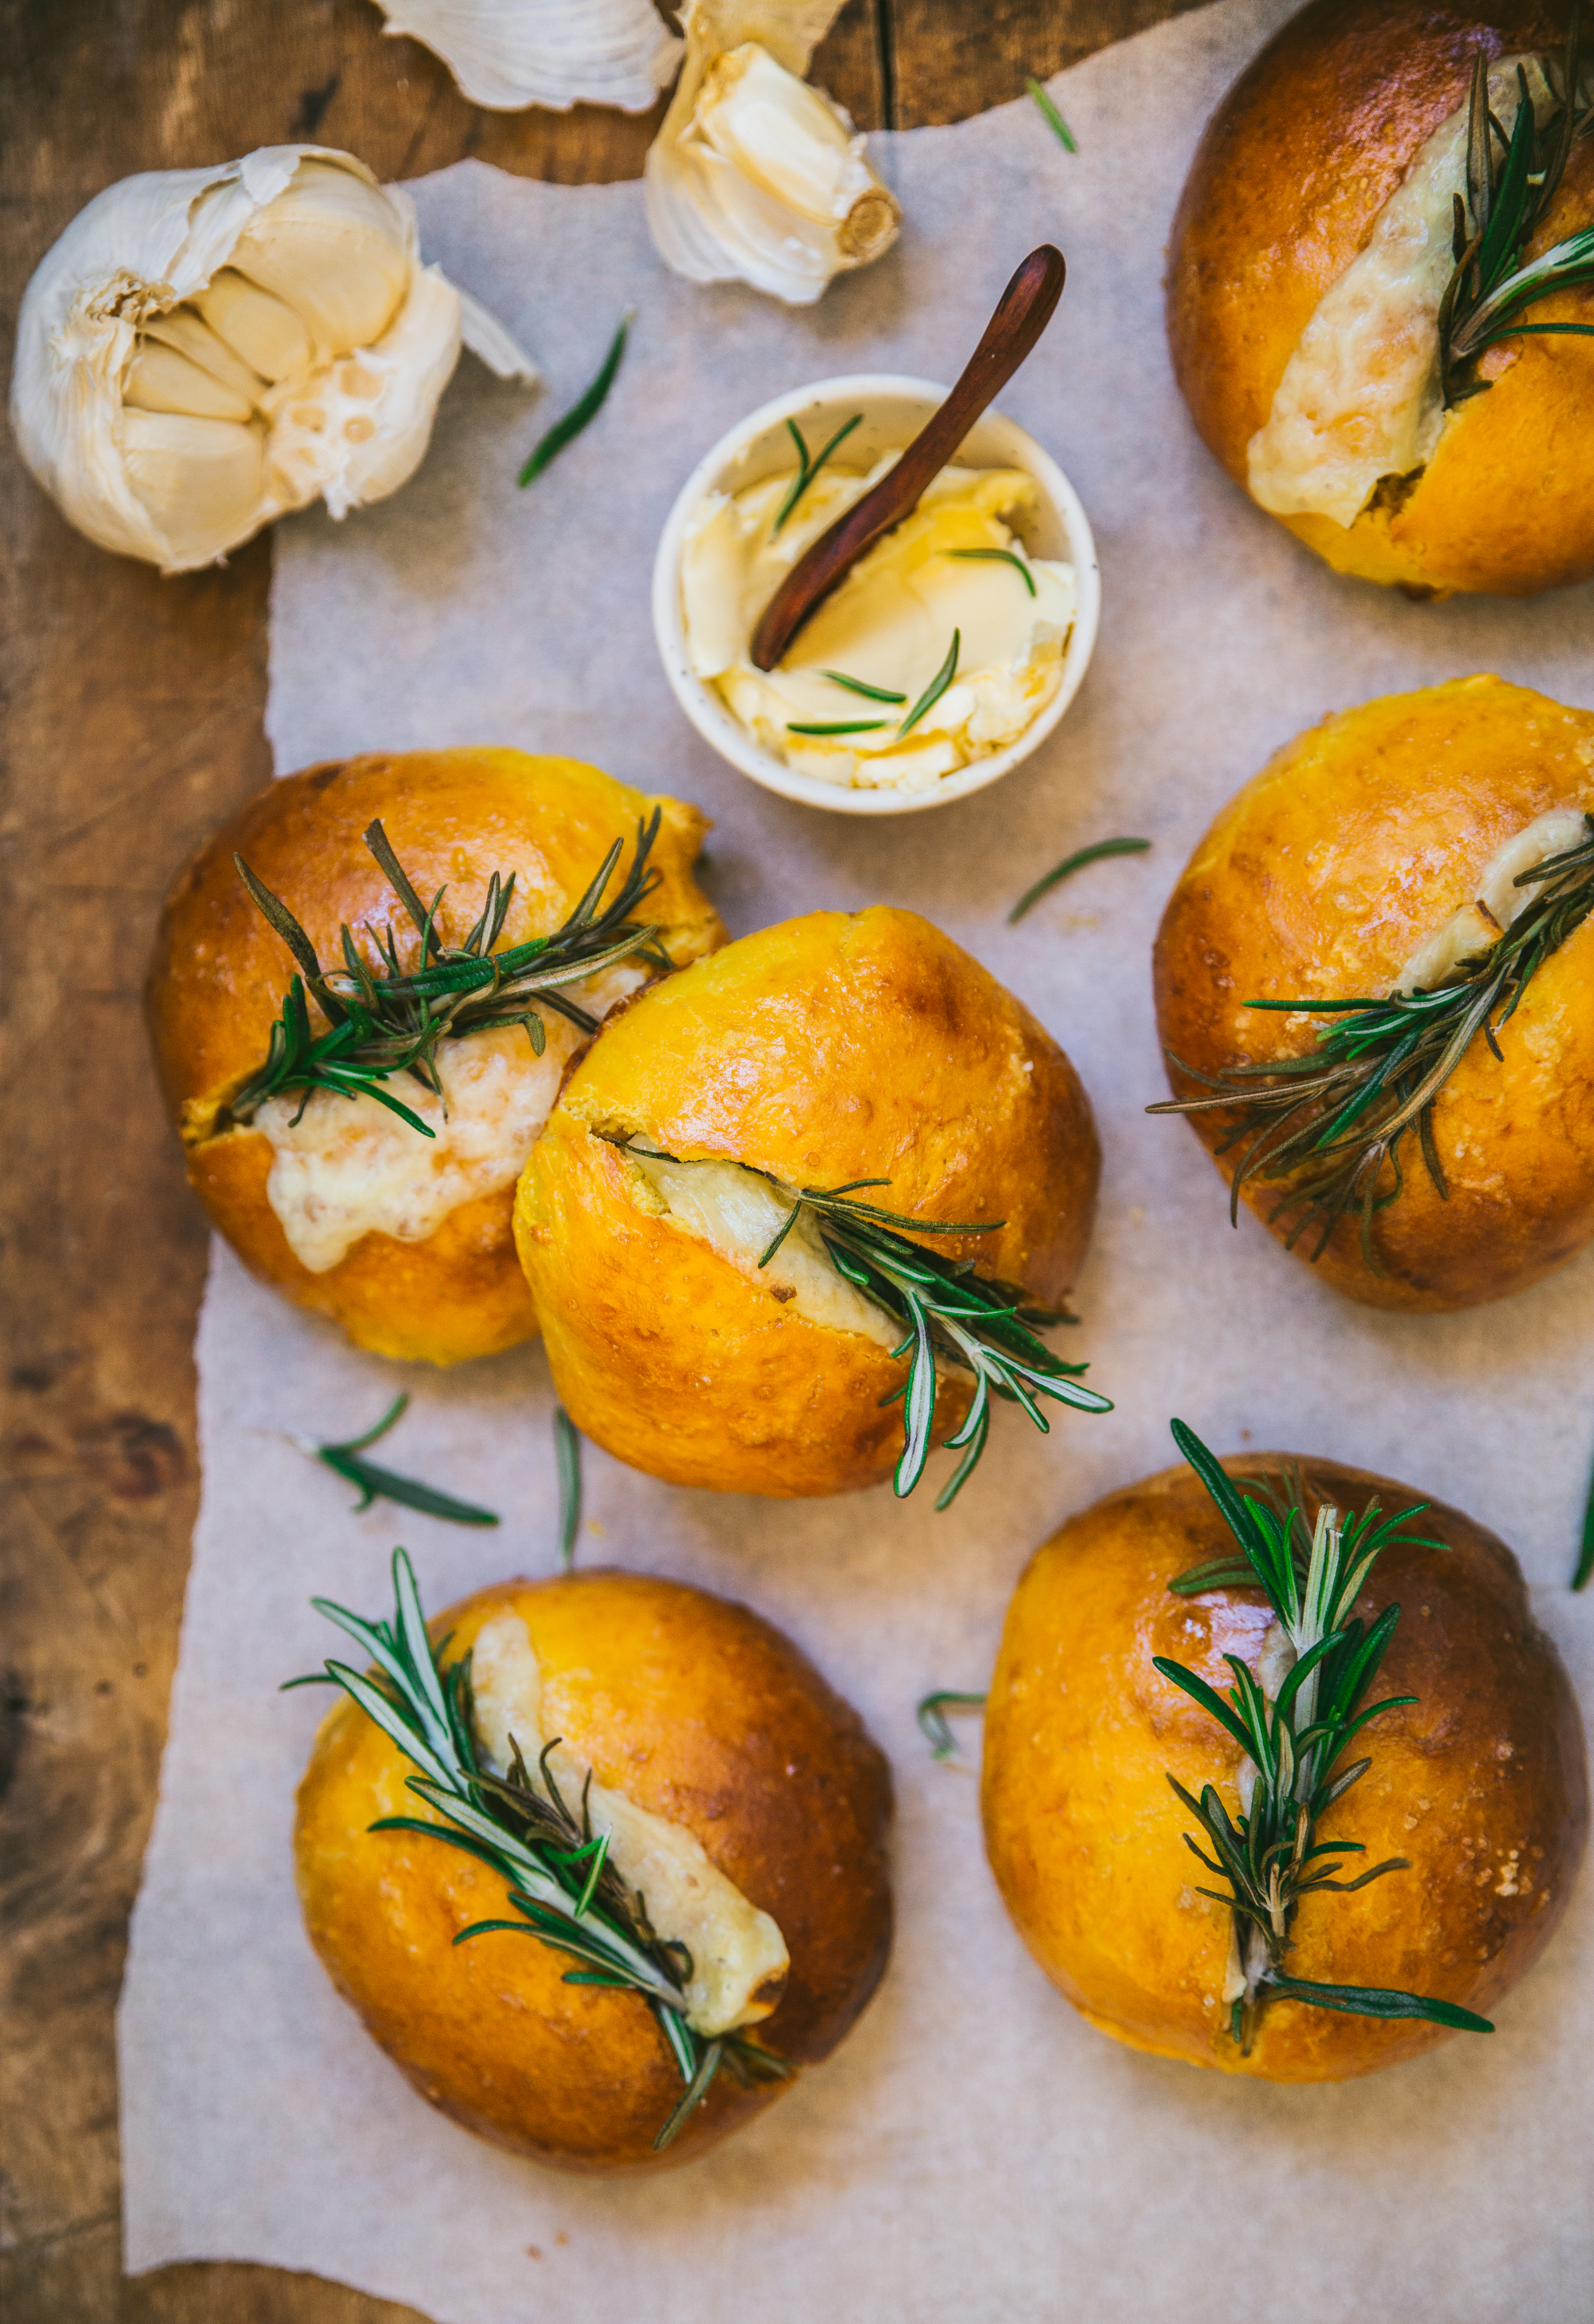 Petits pain courge ail